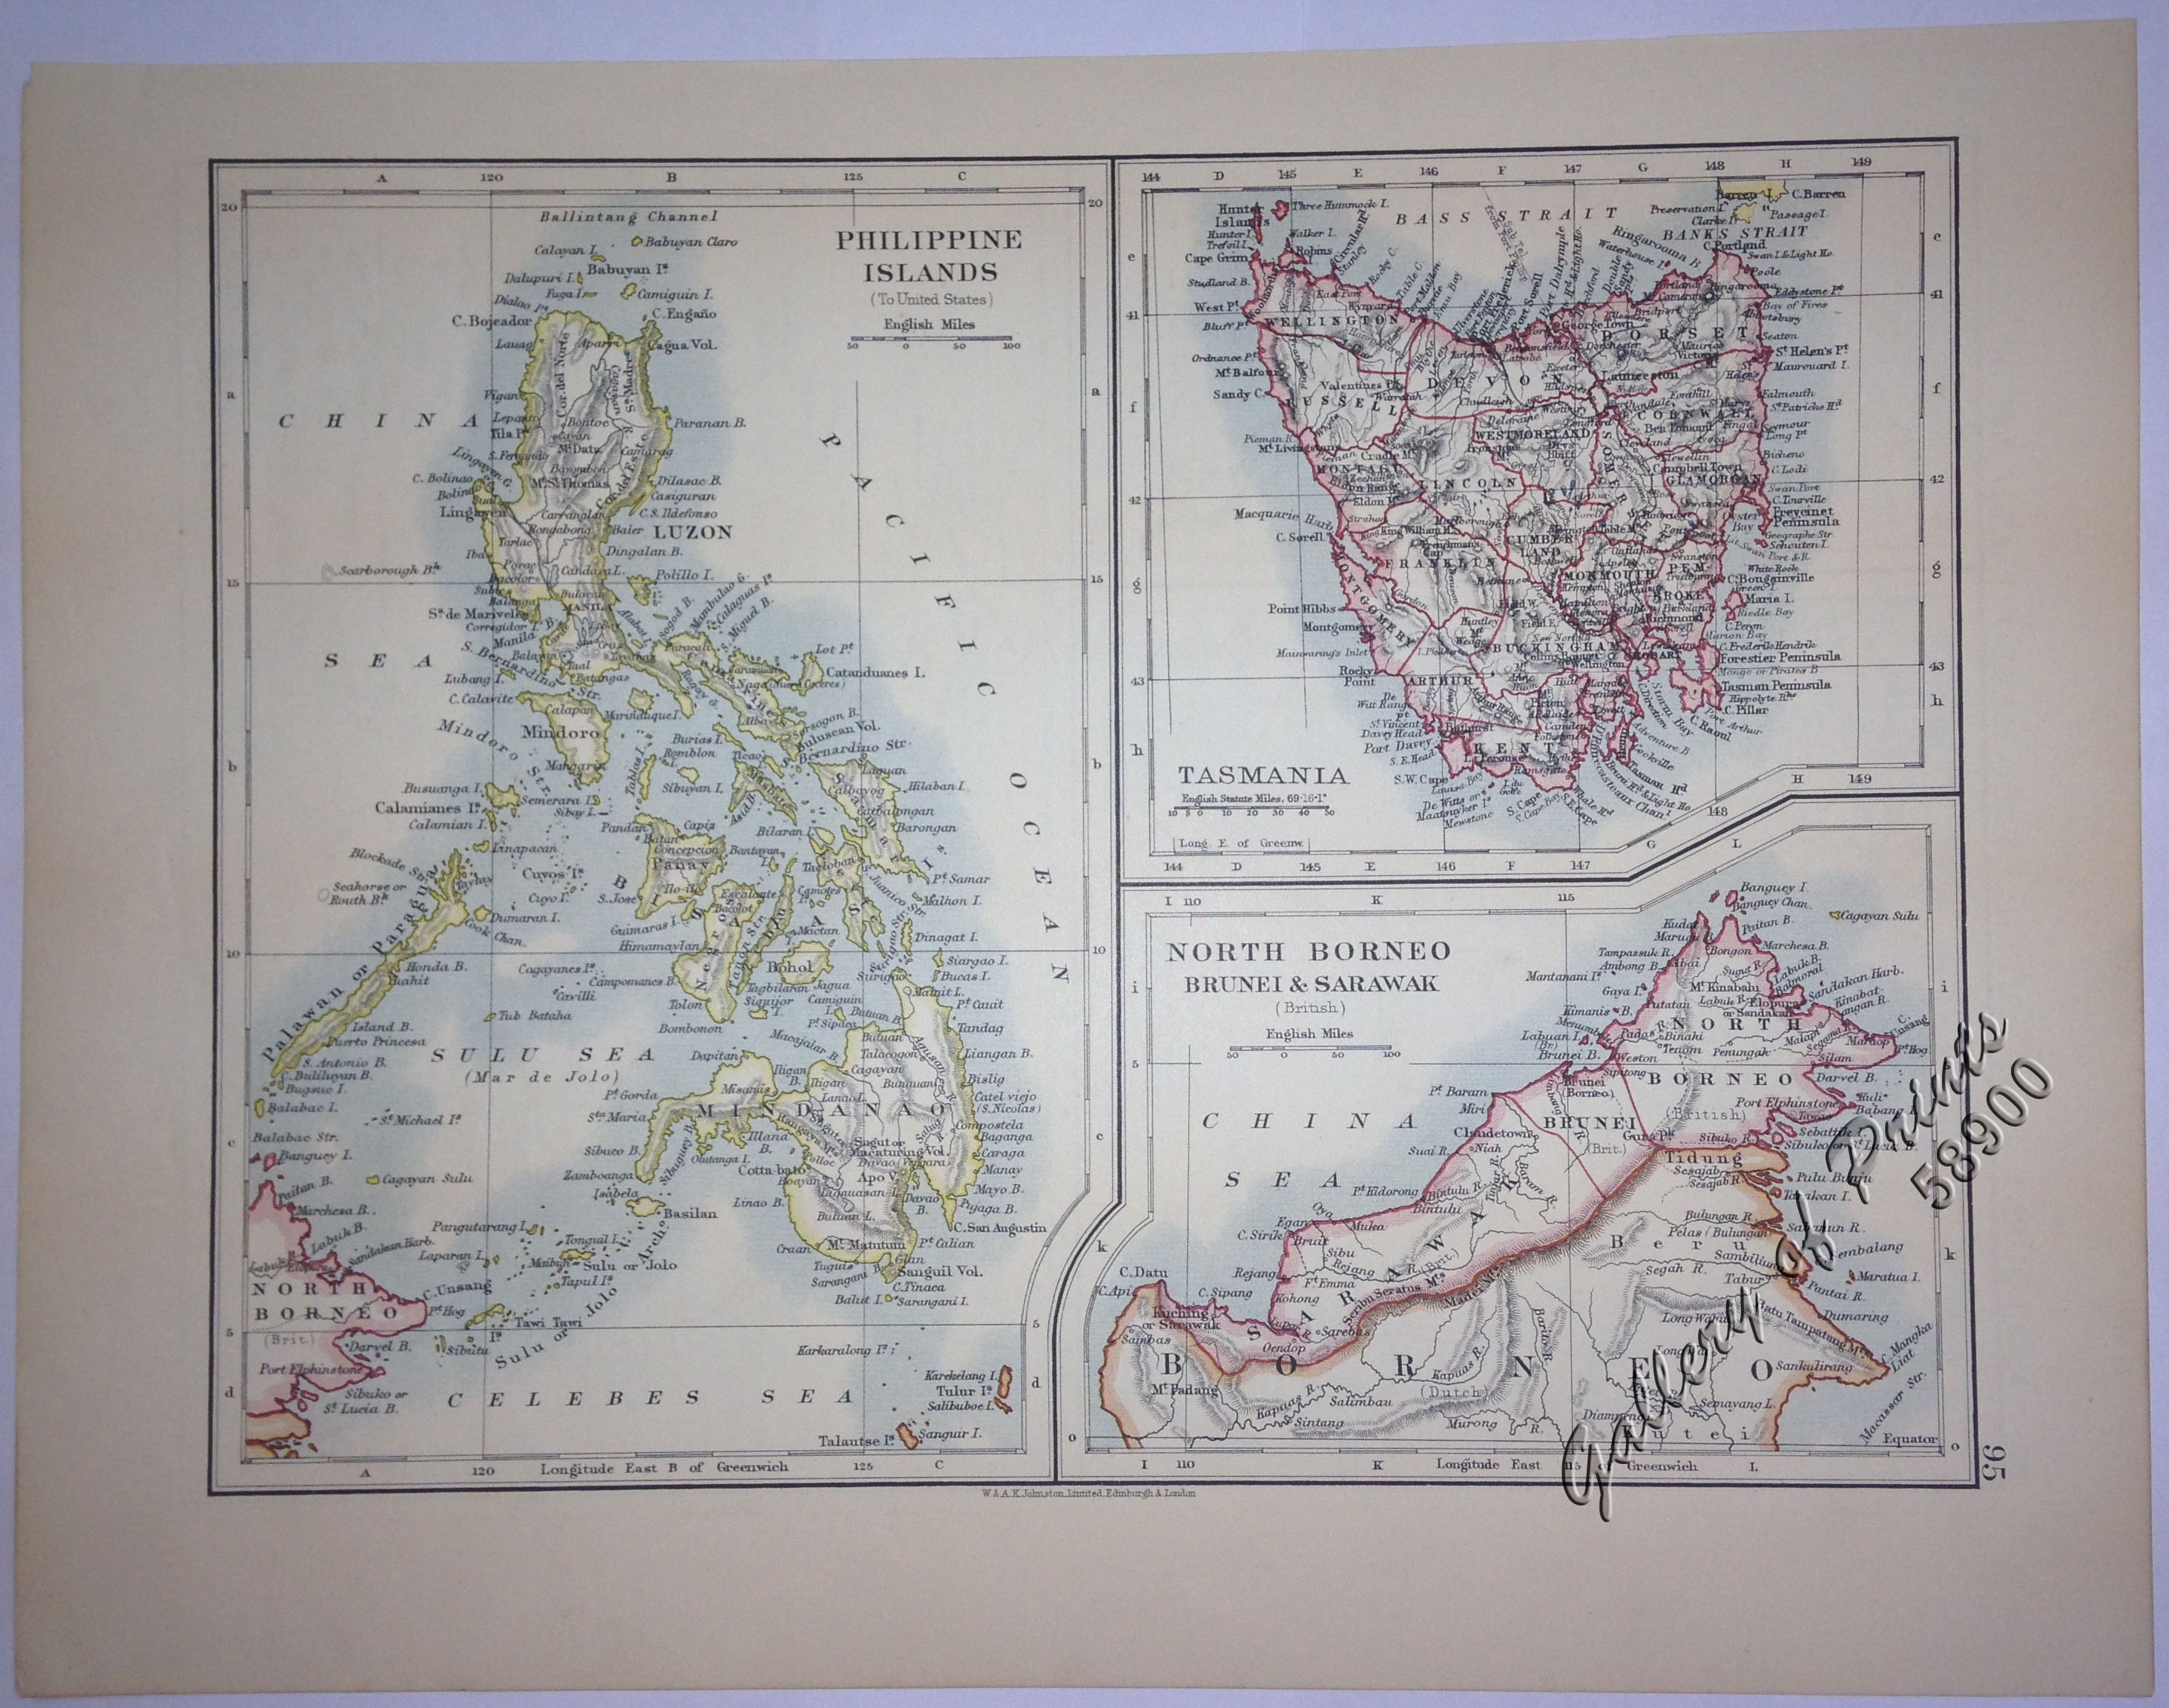 1  Philippine Islands  to United States   2  Tasmania  3  North     1  Philippine Islands  to United States   2  Tasmania  3  North Borneo   Sarawak   Brunei  British   with prints on verso  1  Melbourne and  Environs  2